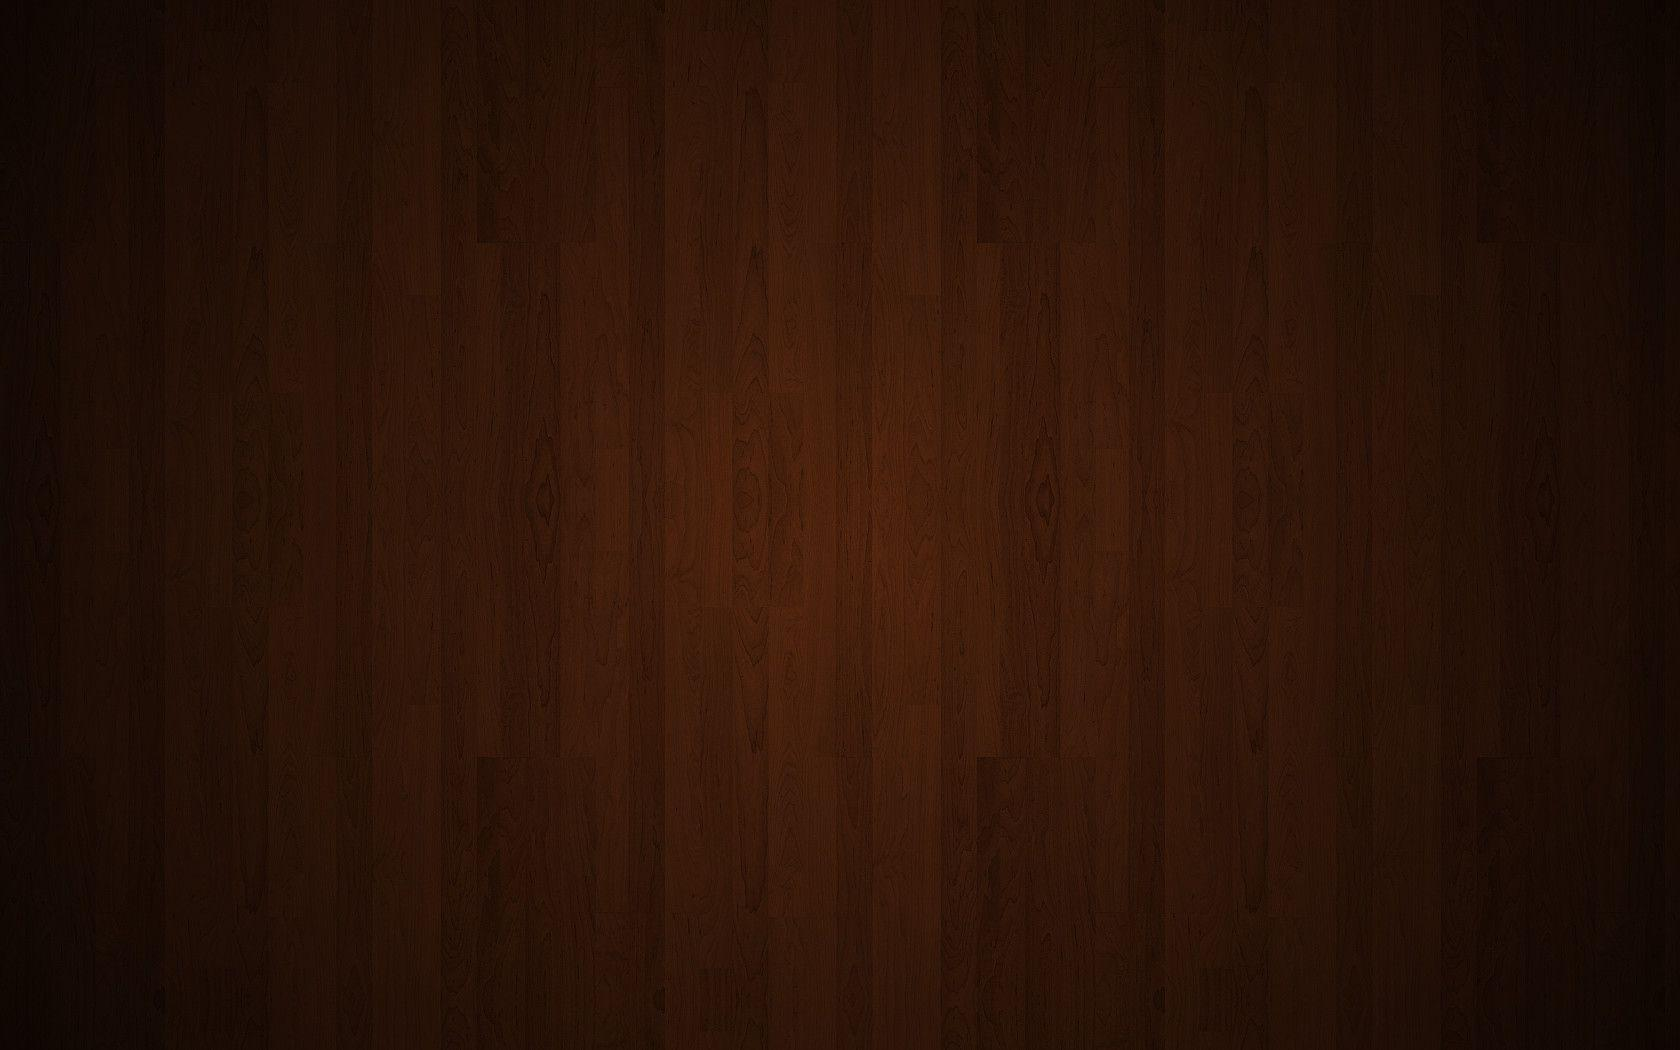 Dark Wood Wallpapers - Wallpaper Cave